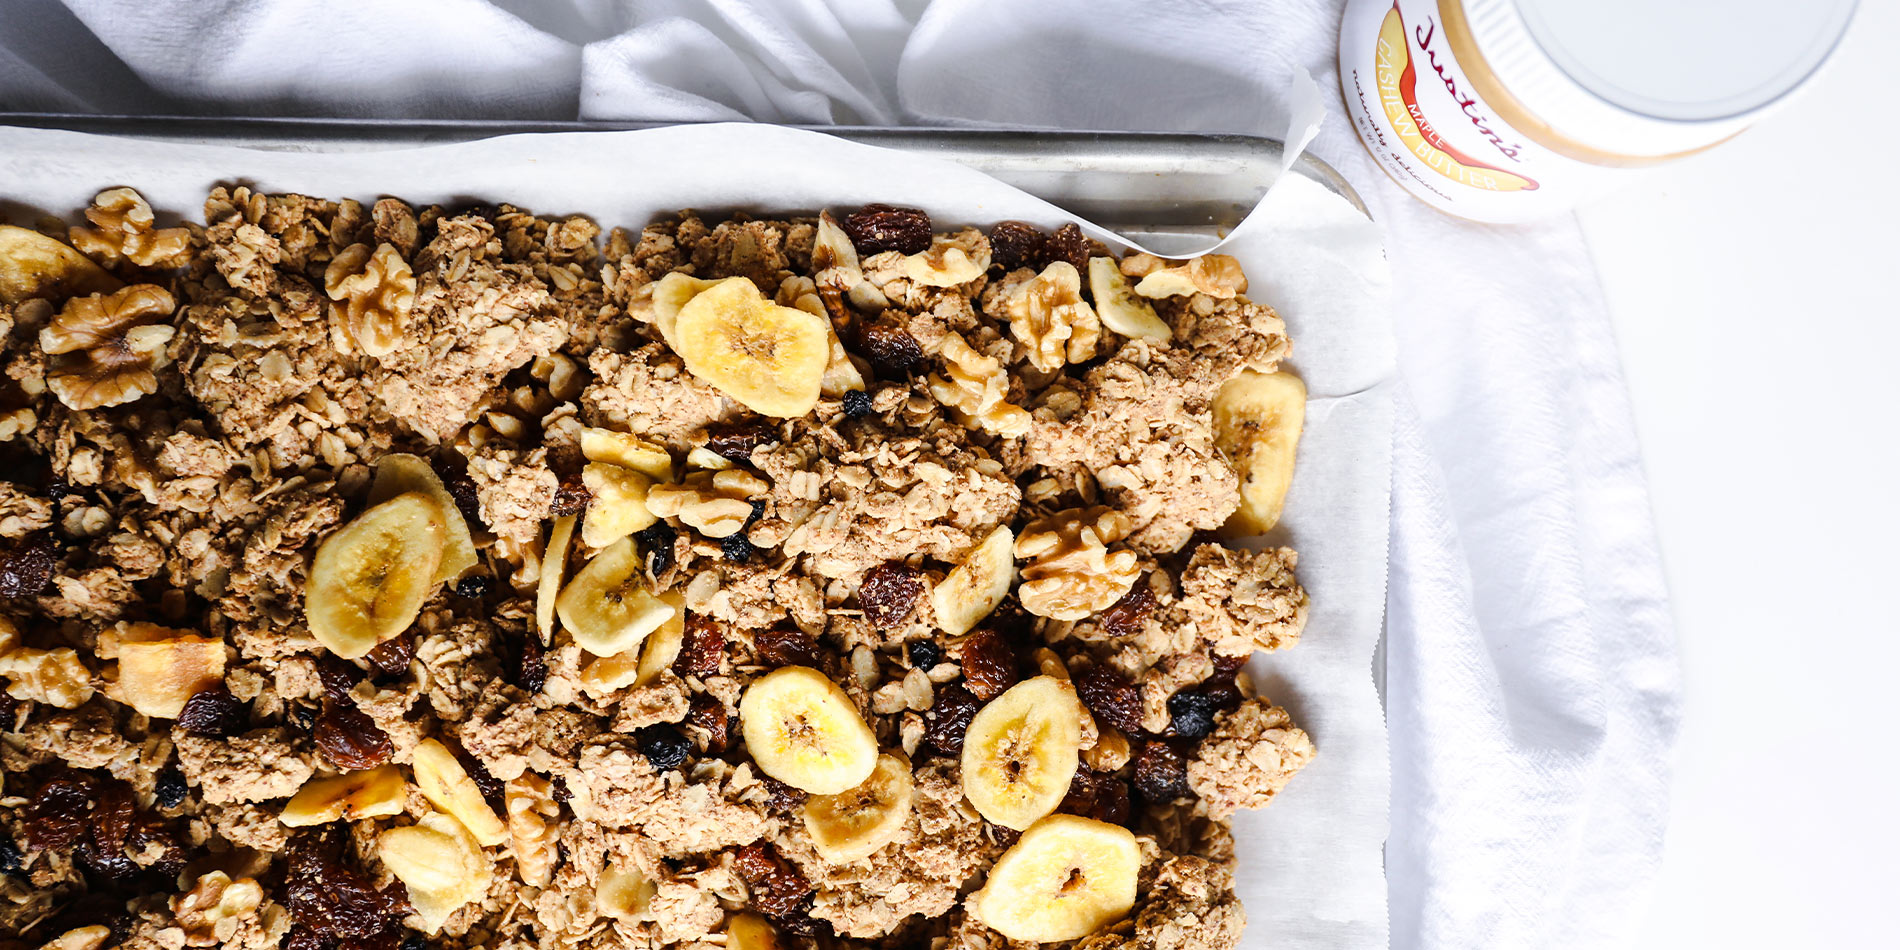 The Best Nut Butter Granola on white parchment sheet in a gray tray which is on a white cloth on a white background